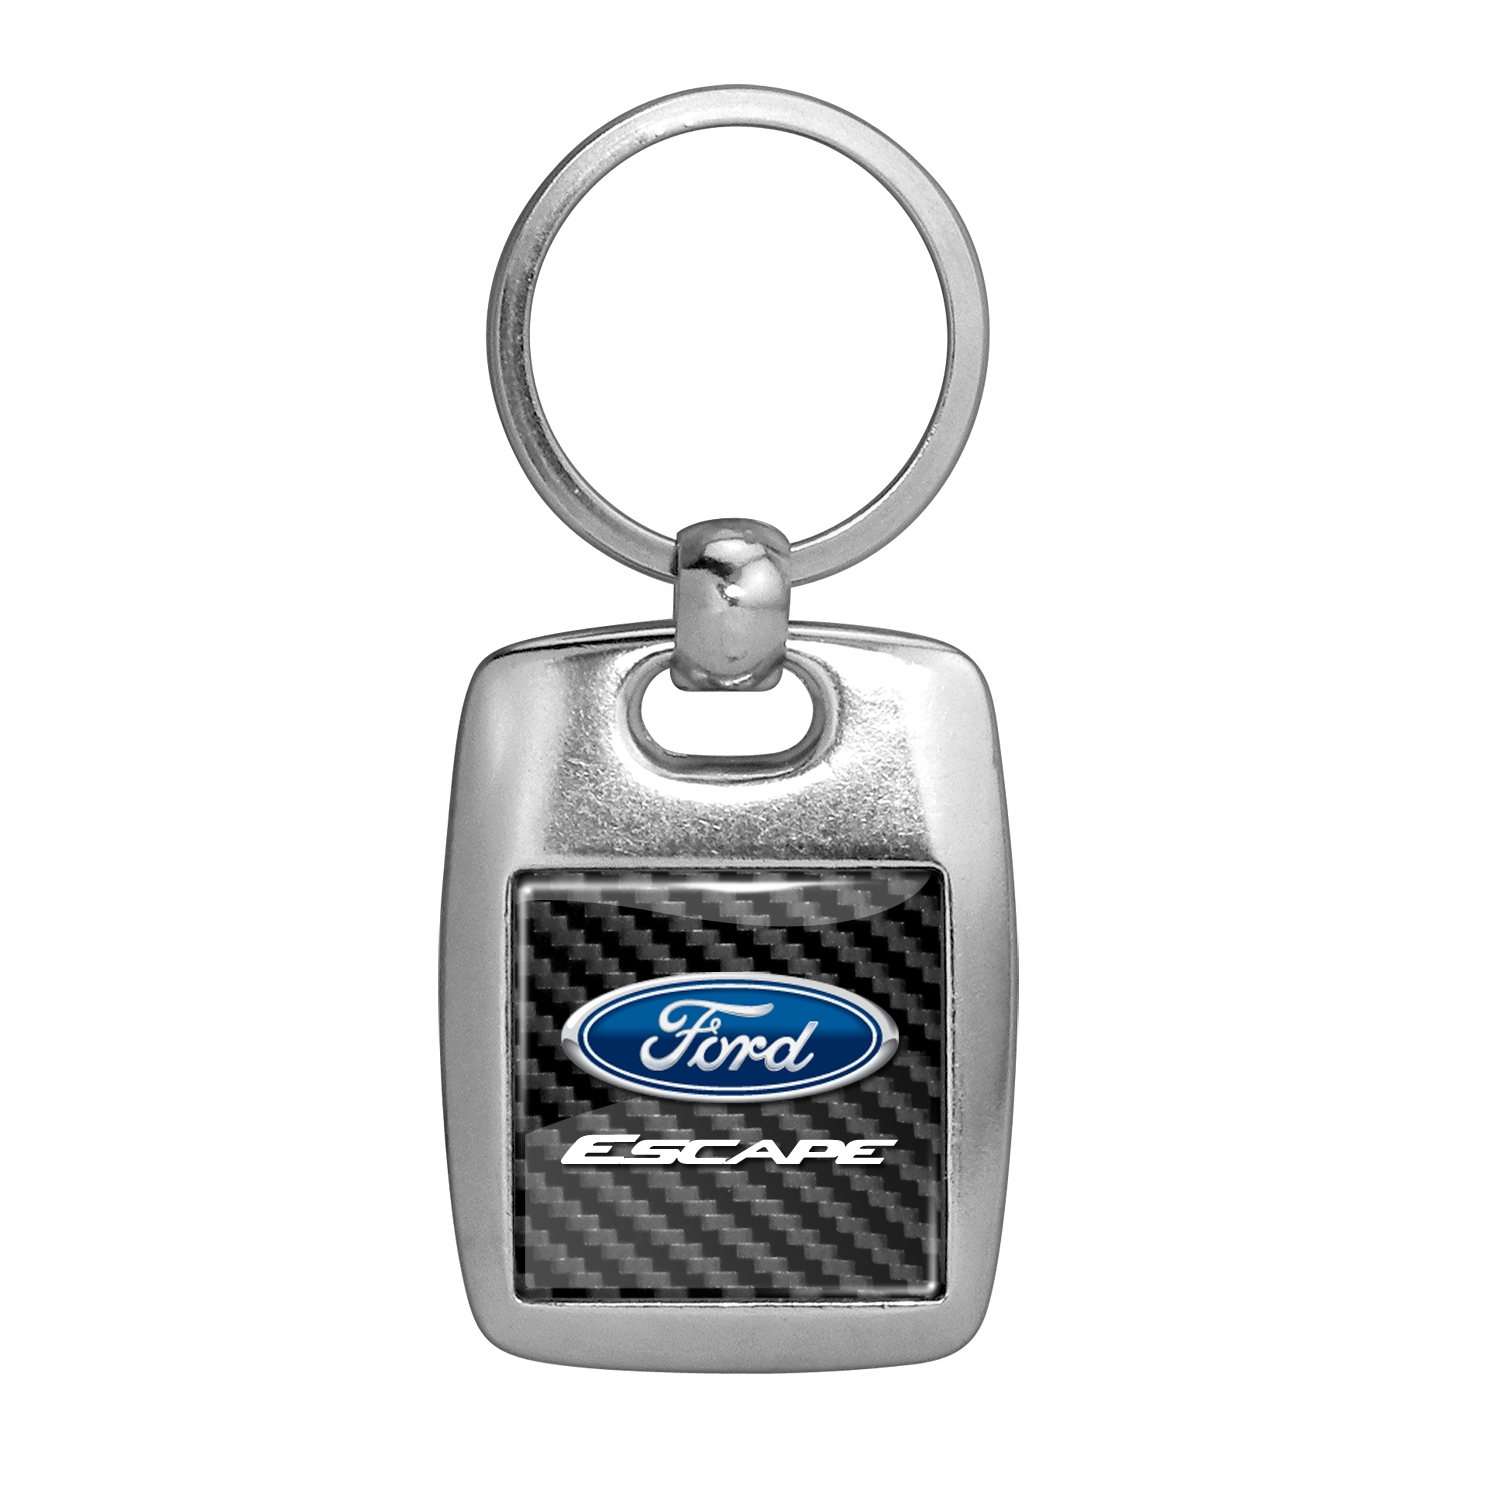 Ford Escape in Color on Carbon Fiber Backing Brush Metal Key Chain